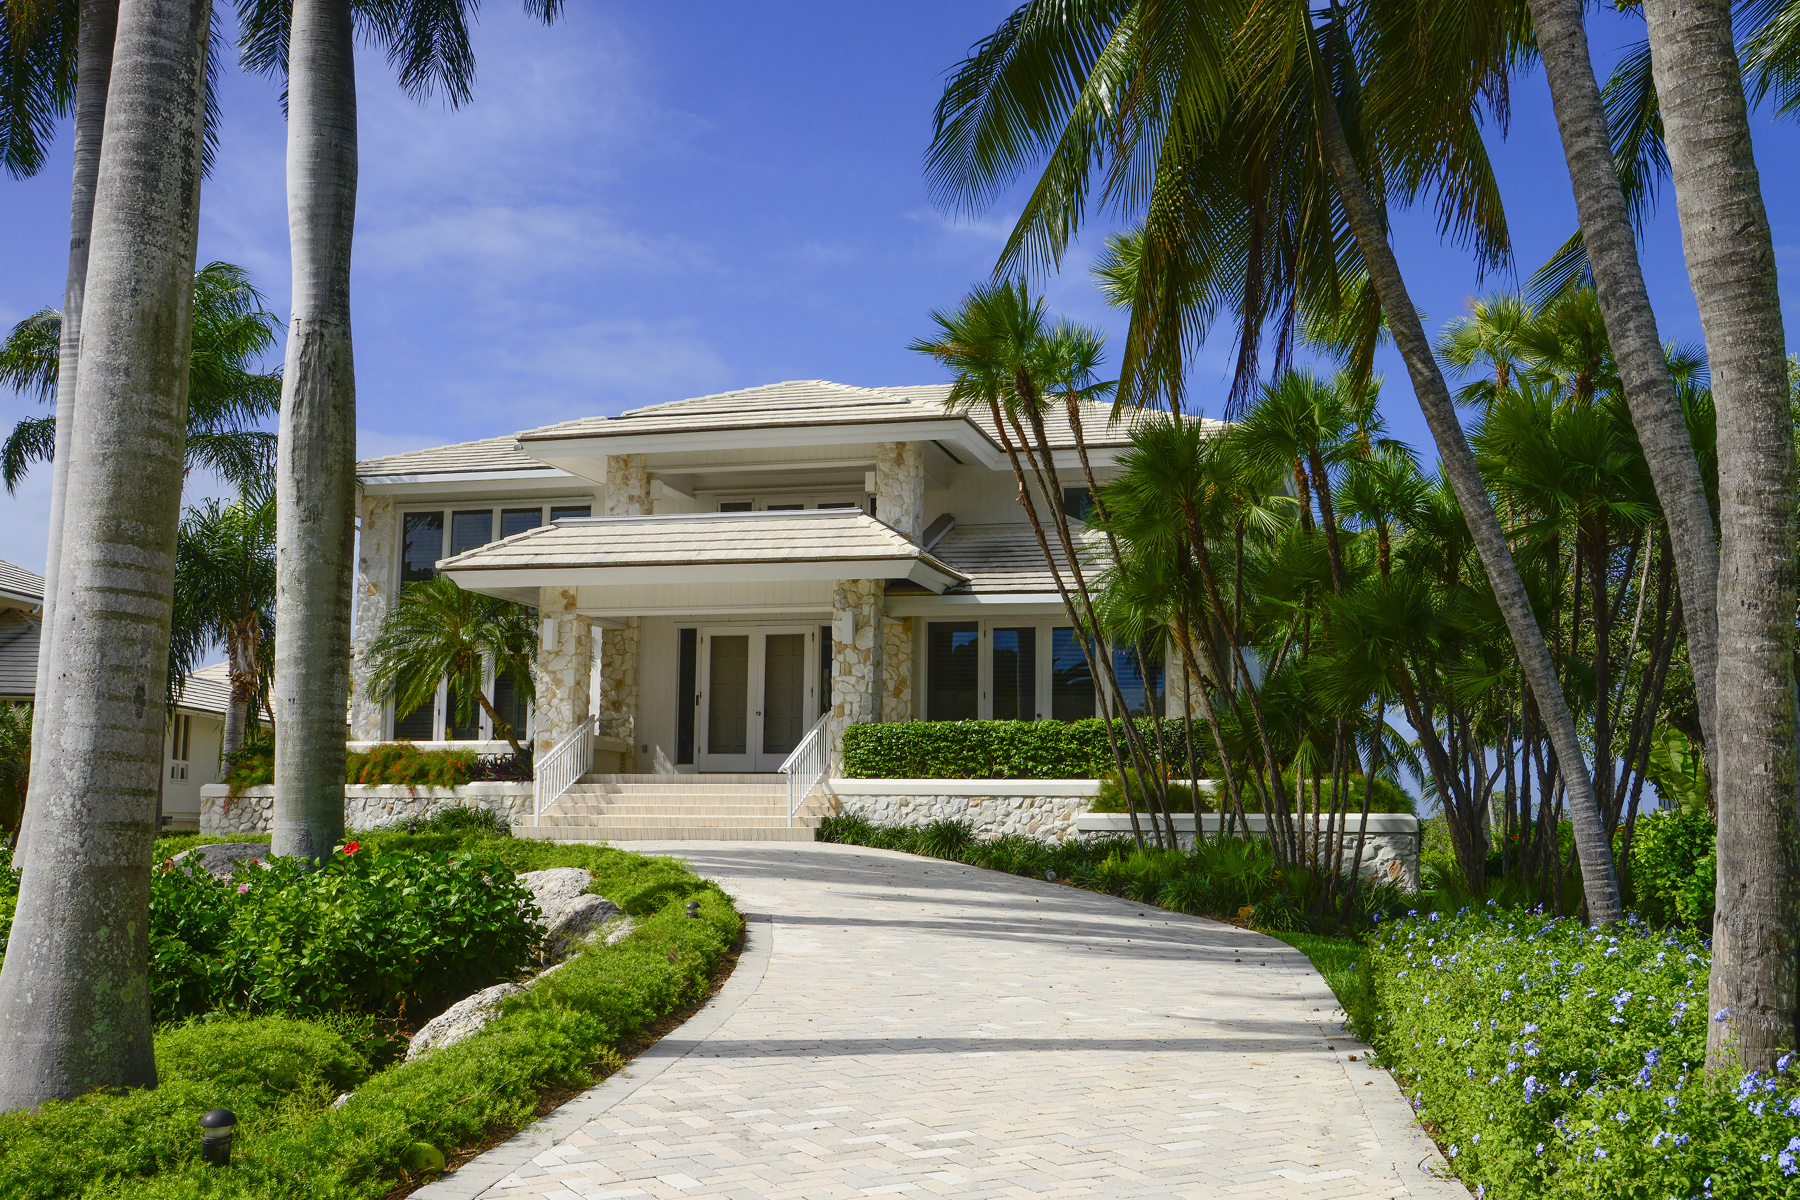 Maison unifamiliale pour l Vente à Prestigious Waterfront Living at Ocean Reef 13 Osprey Lane Ocean Reef Community, Key Largo, Florida, 33037 États-Unis